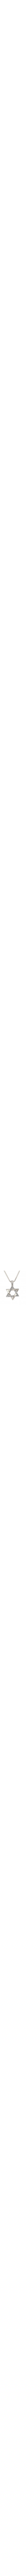 Star of David pendant is made of 14k white gold